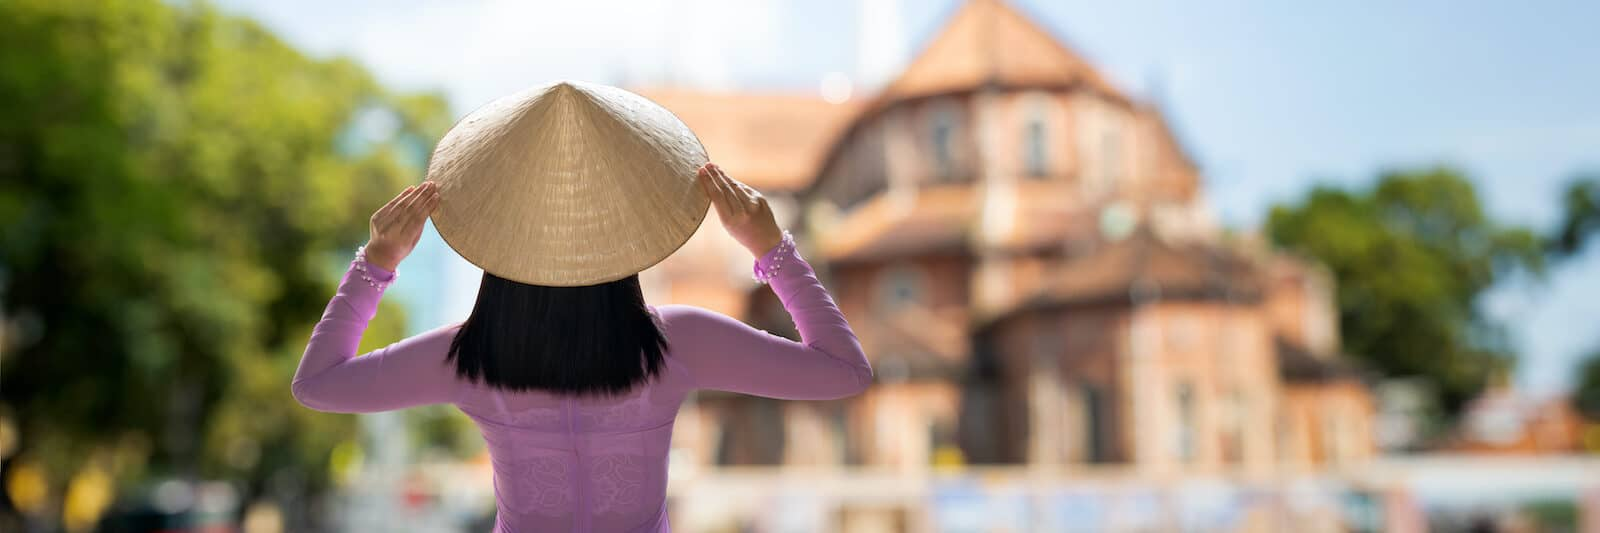 Vietnam Culture Notre Dame Cathedral Woman in Ao Dai HCMC